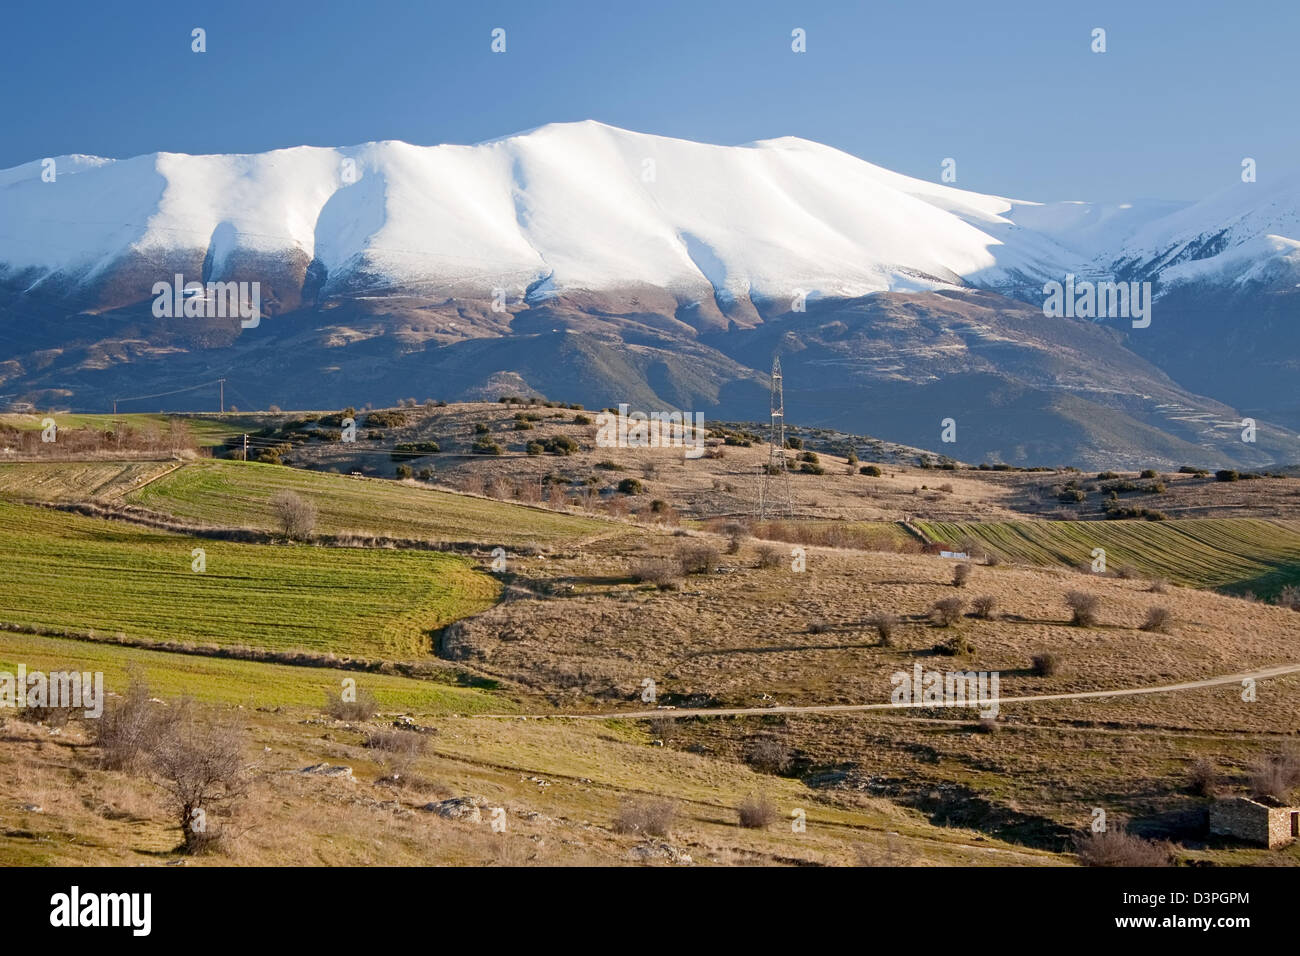 The southern side of the Greek mountain of gods, the Olympus mountain - Stock Image